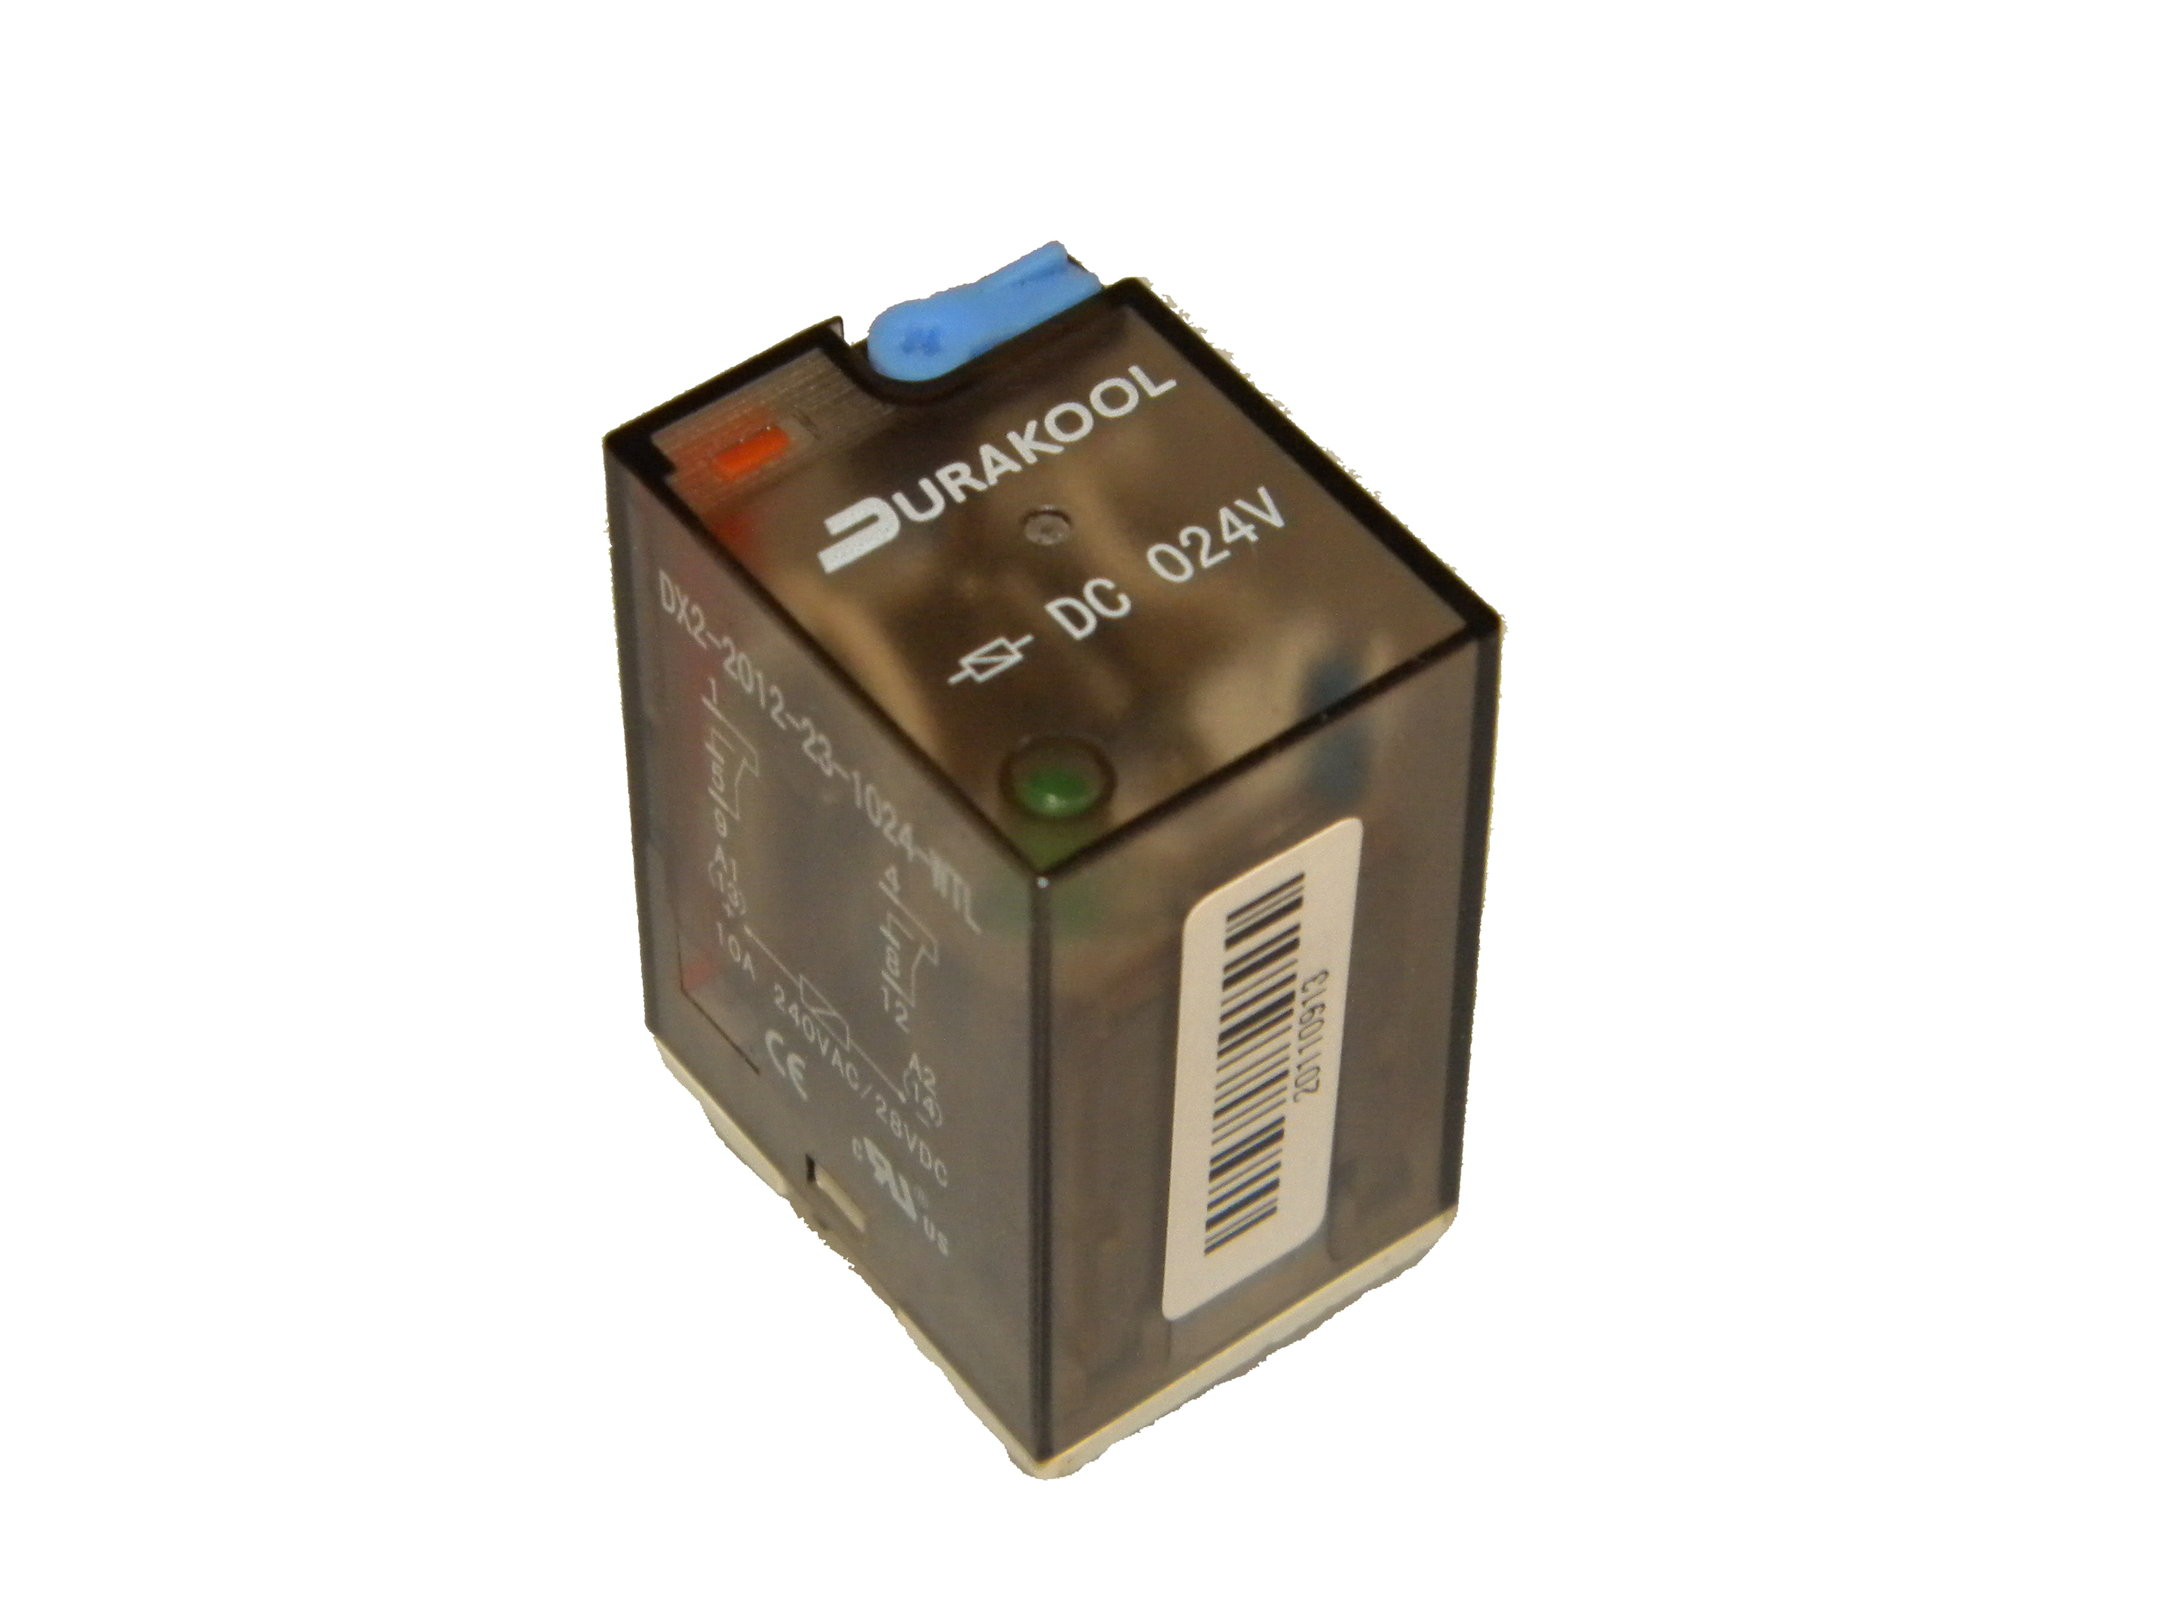 Relays and Bases - Buy Online - EC Products UK